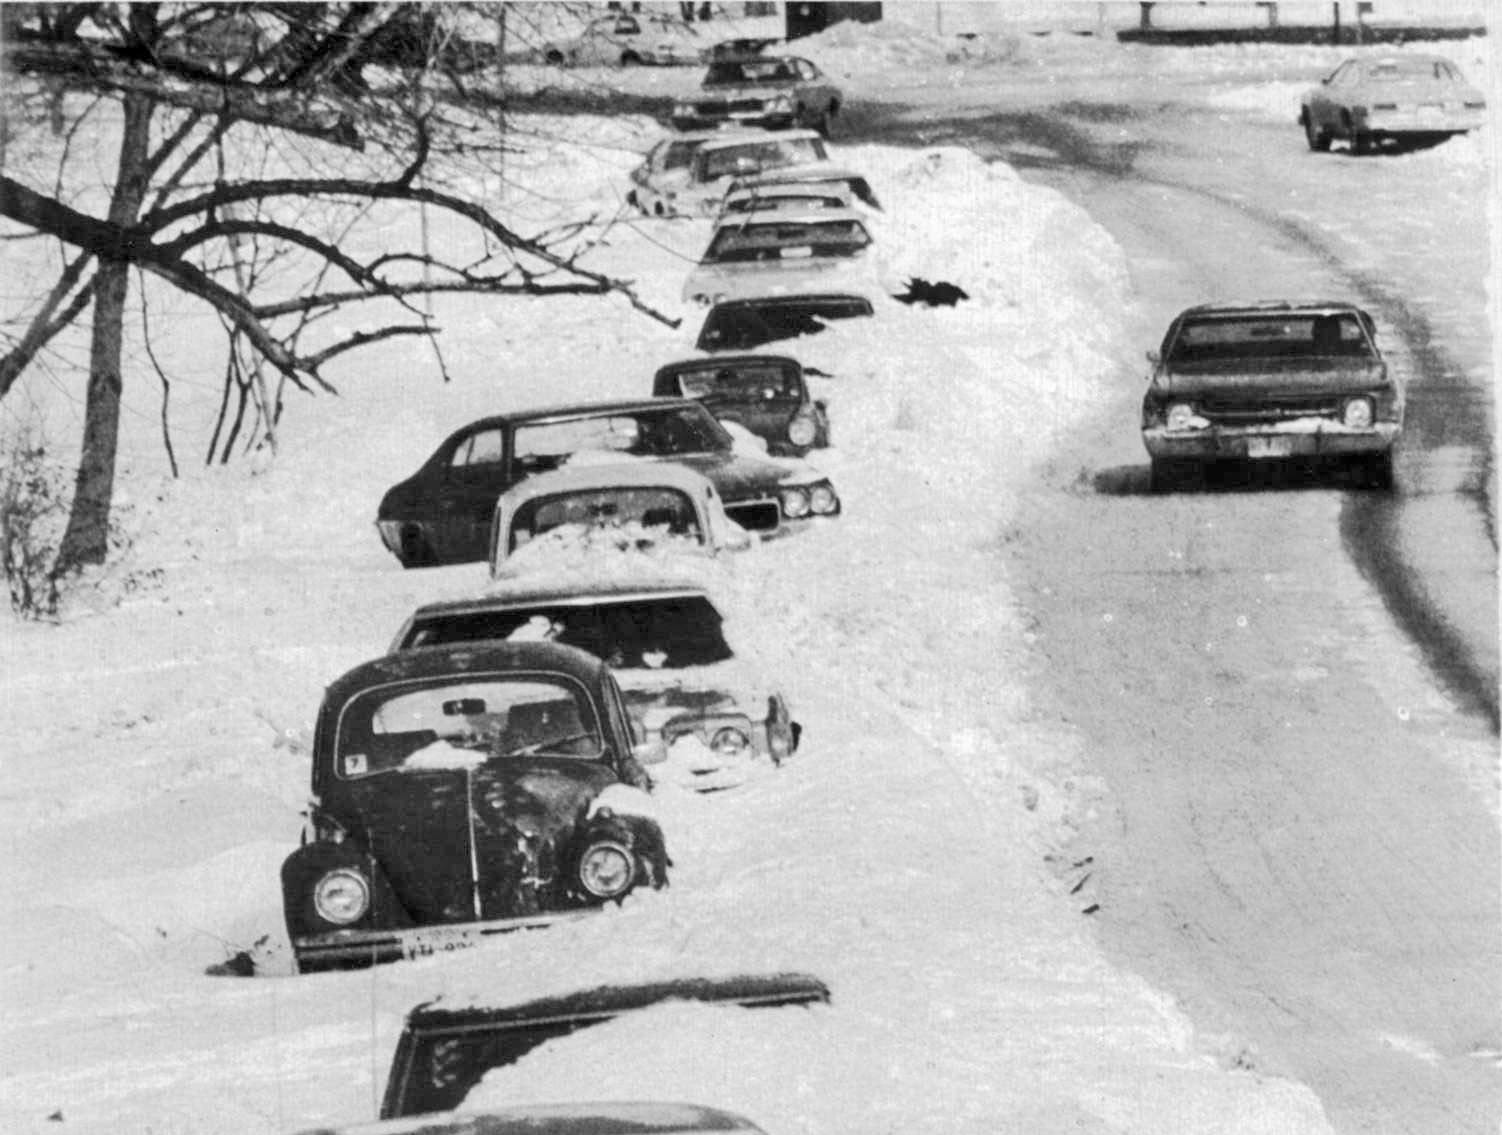 Jan. 26, 1978: On a side street in Lincoln Park near the lakefront, these cars were buried in snow.